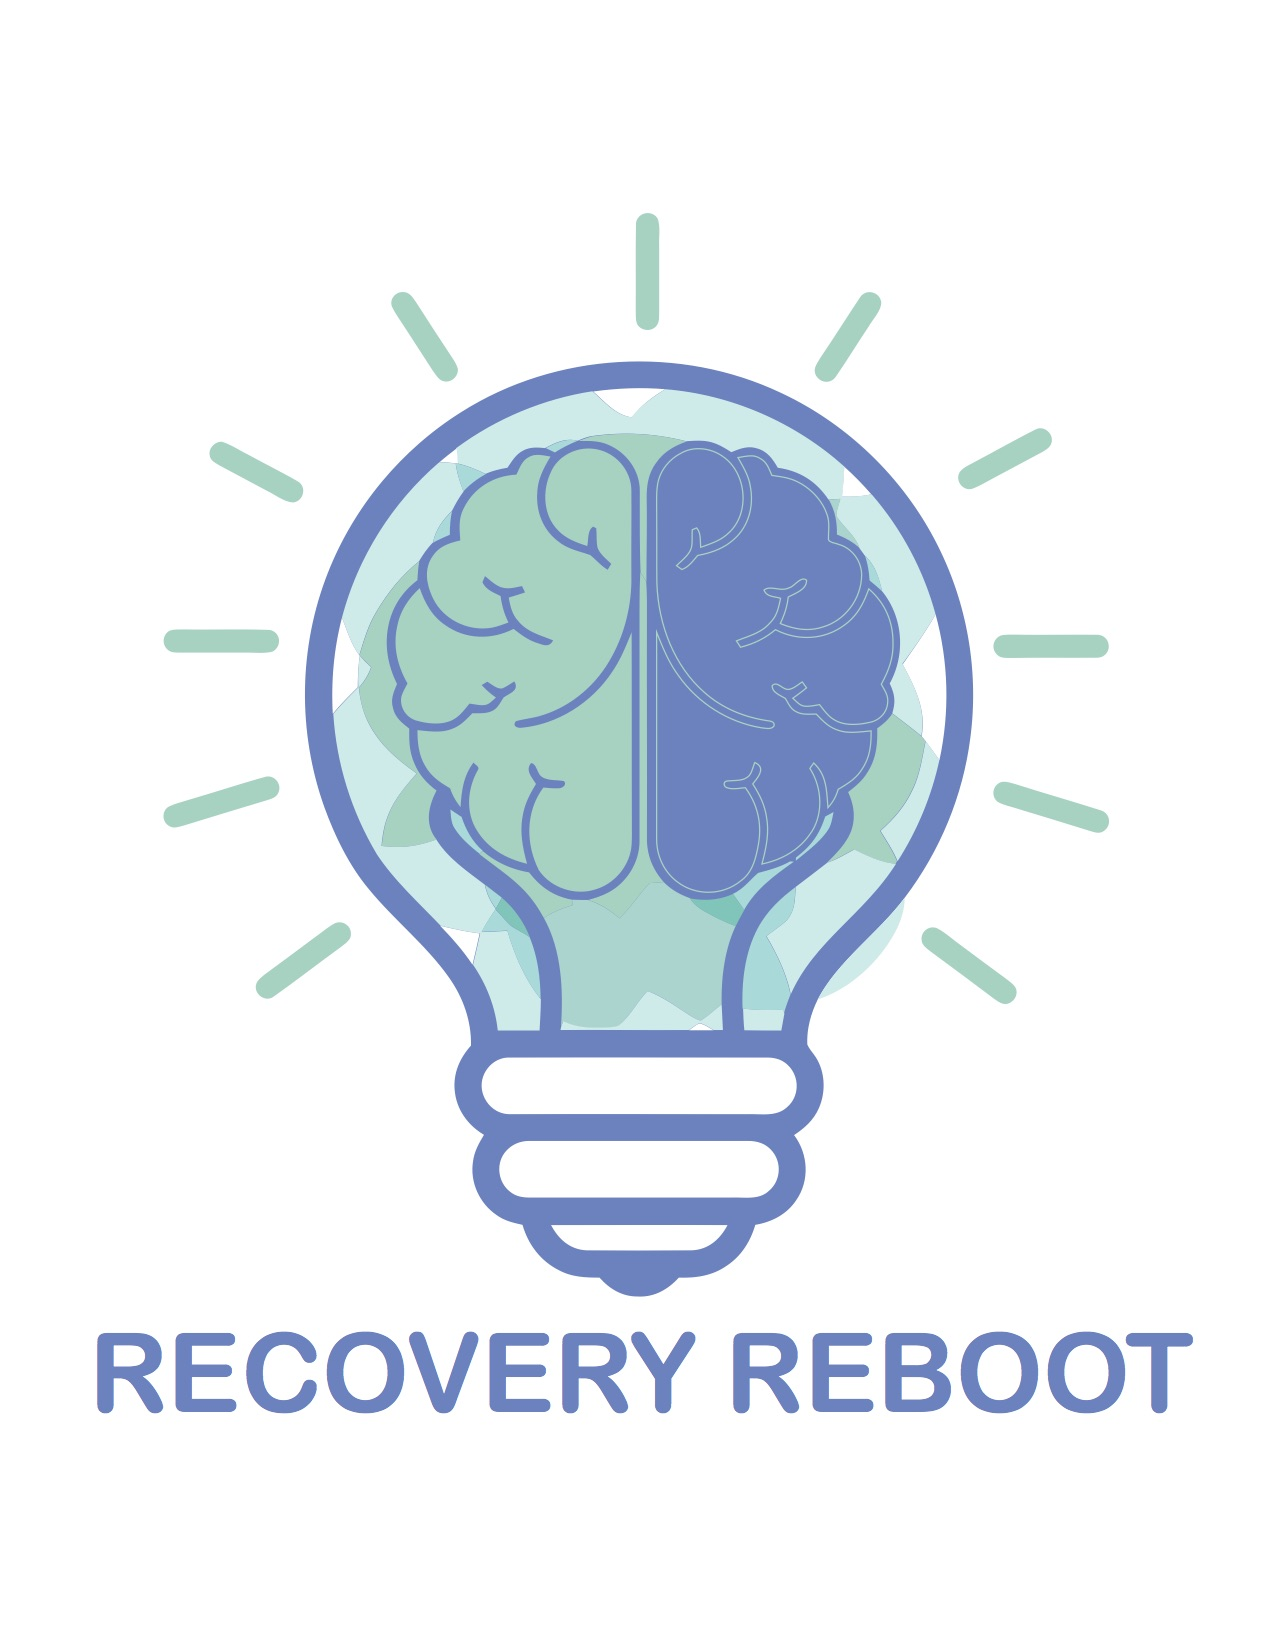 Recovery Reboot's Vision & Mission: - The vision for Recovery Reboot was, upon its inception, and still is to provide gap services for high school, college, and adult clients undergoing major life transitions. Our 1-5 day intensives provide meal support, nutrition and therapeutic groups, skills building, and experiential activities (outings) to help ease the transition and reduce the risk of relapse for those in Eating Disorder recovery, in addition to the work clients are doing with their individual treatment teams.